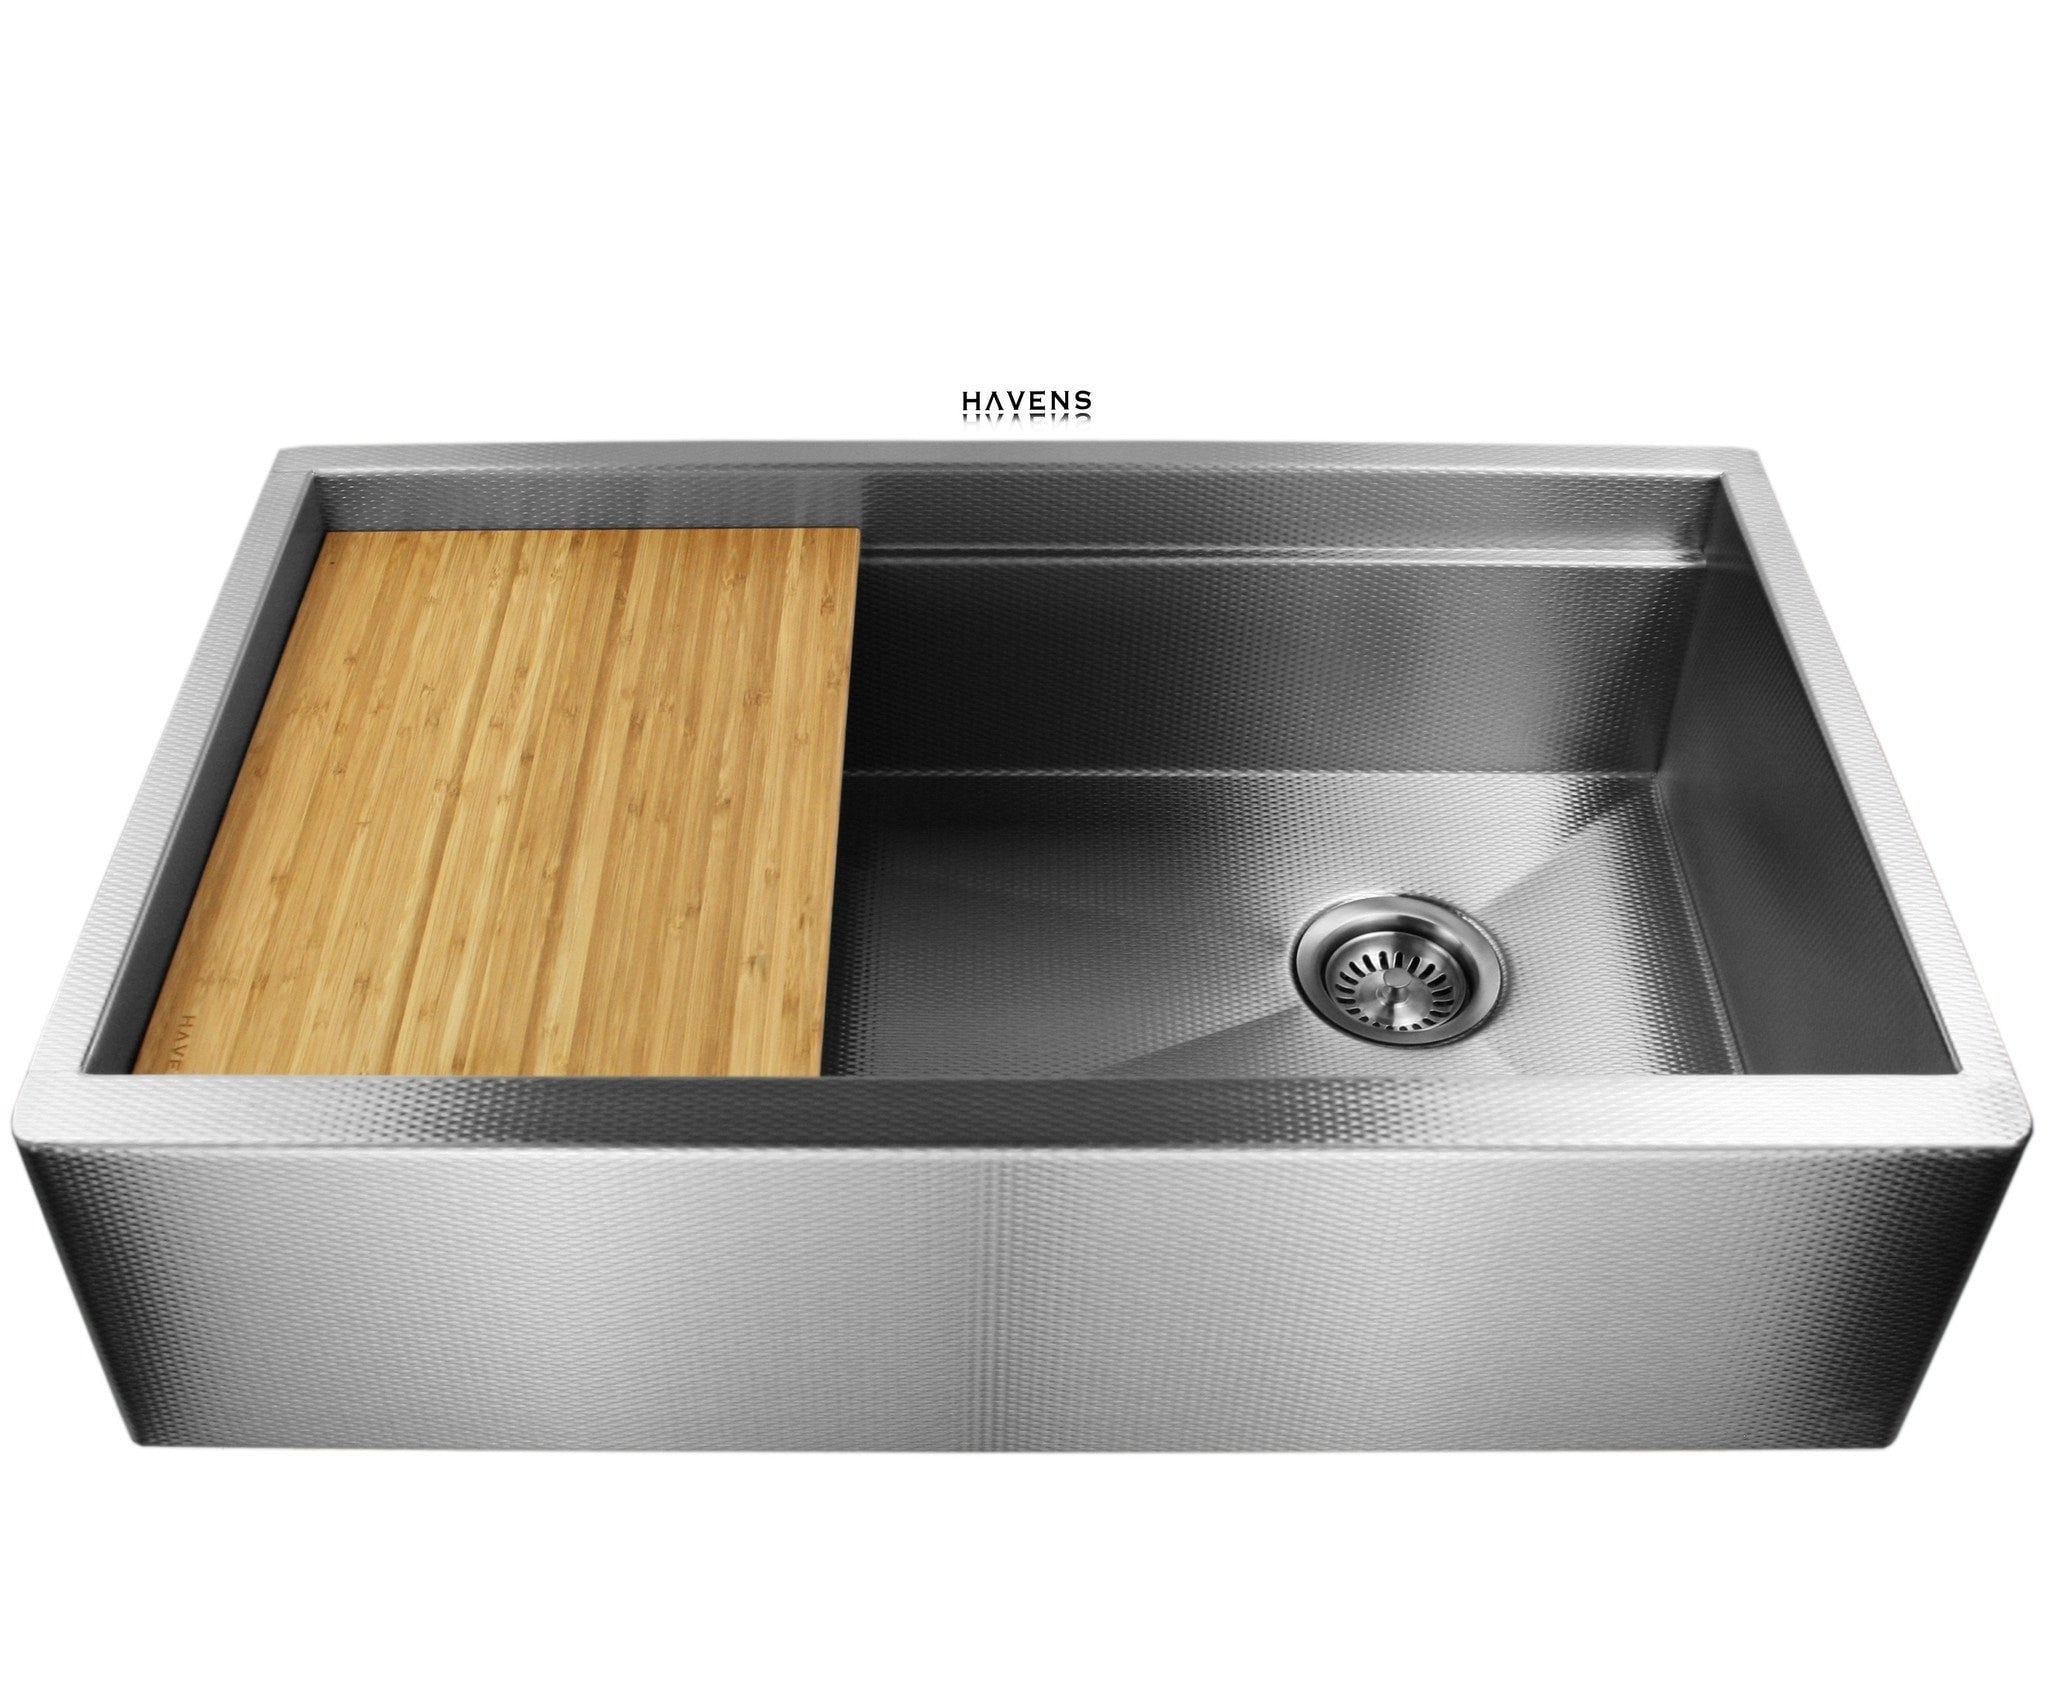 Professional cutting board for kitchen sinks usa havens metal professional cutting board workwithnaturefo